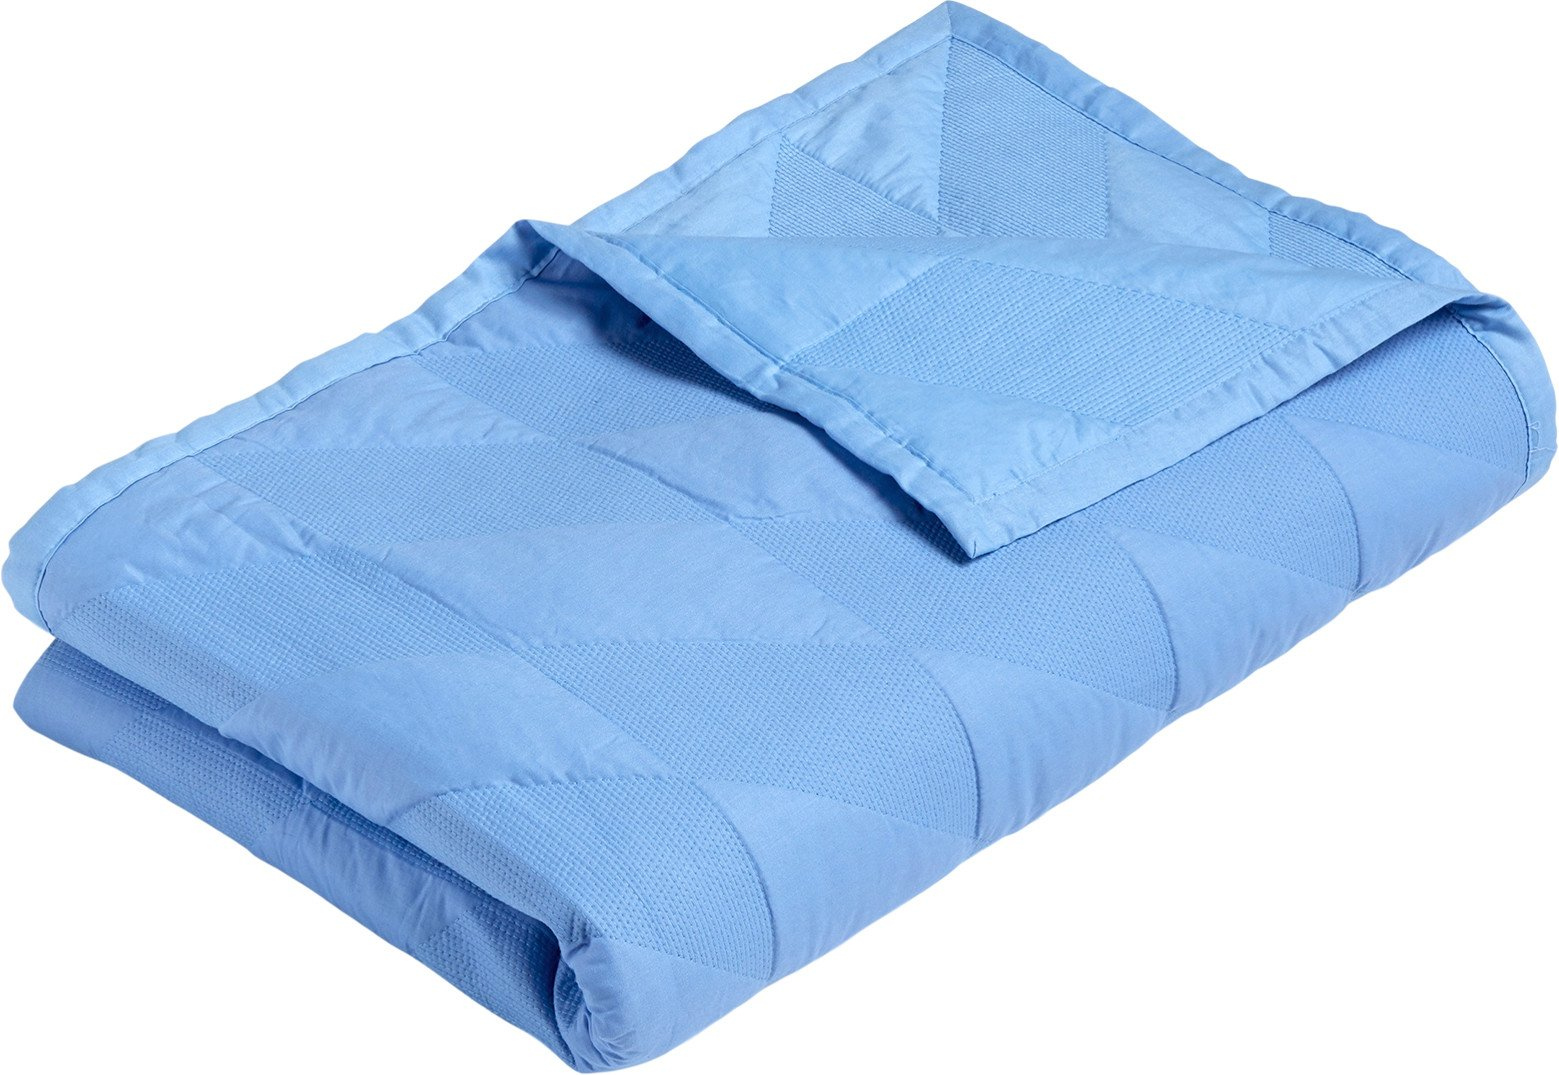 Kite Quilt Cover Bed 245 x 235 cm Sky Blue, HAY